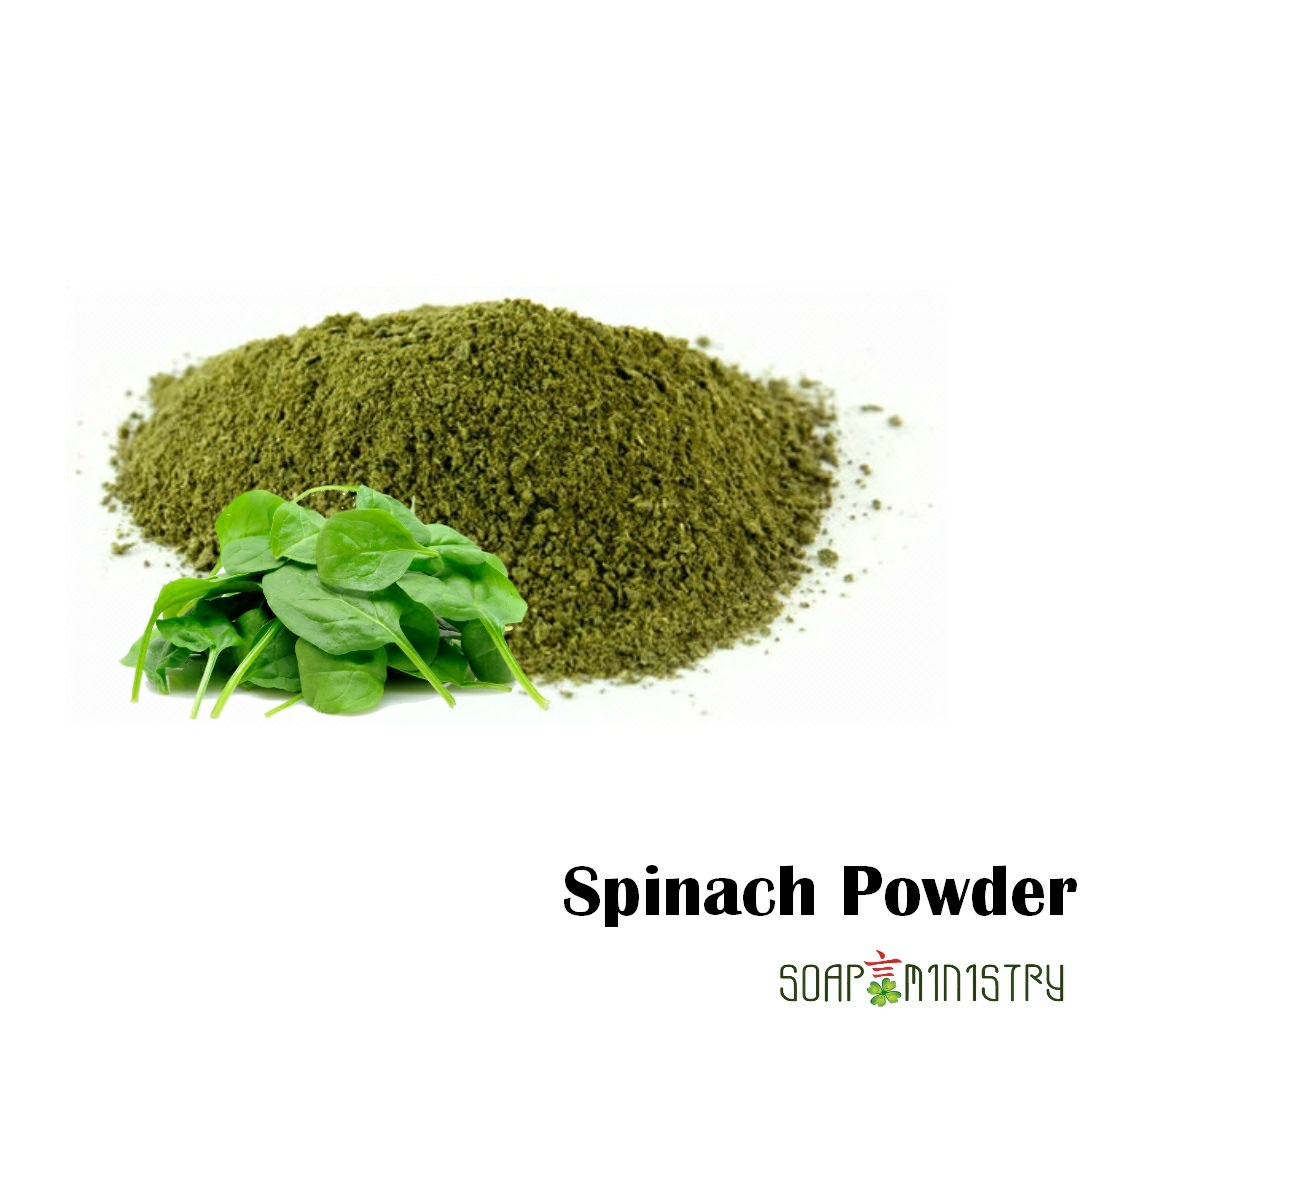 Spinach Powder 50g